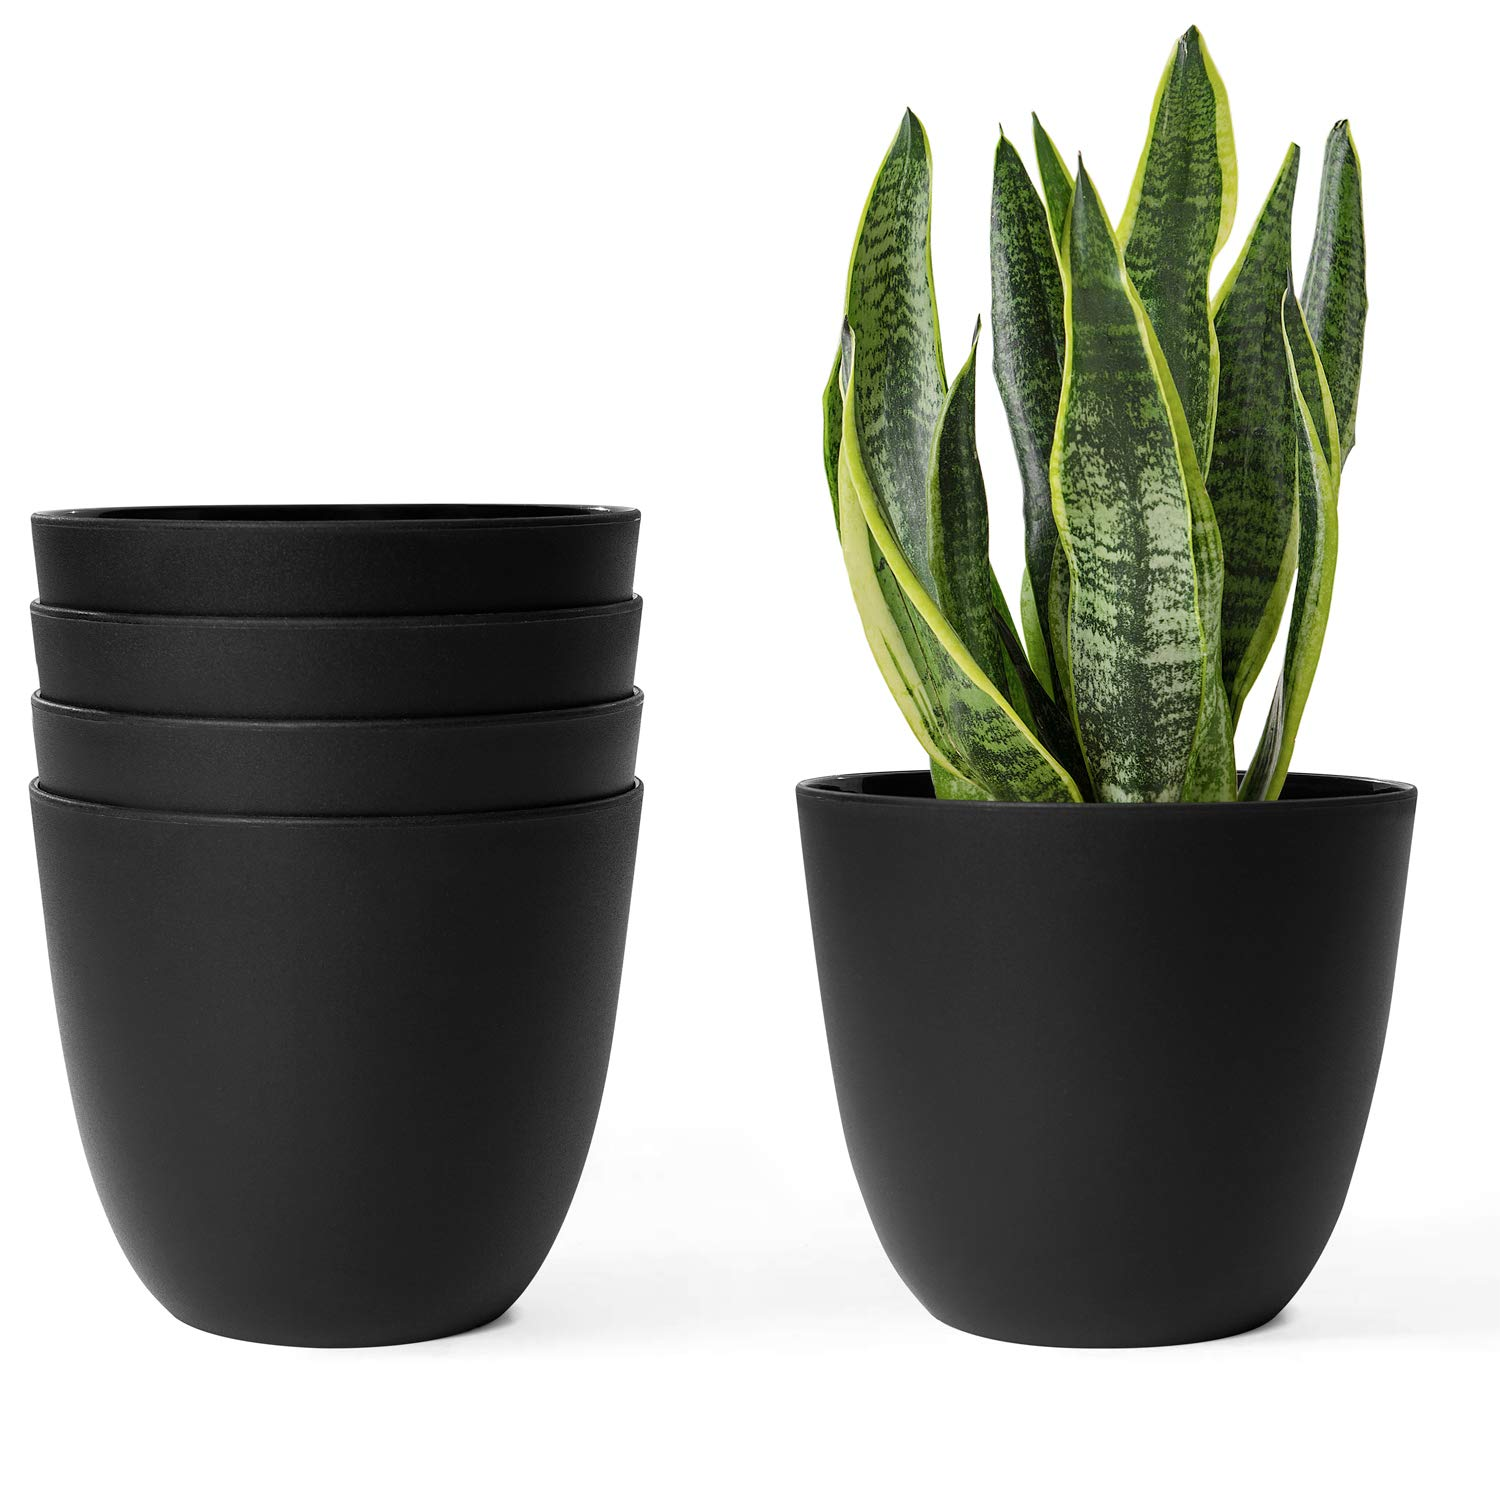 Foliage Plants Black Mkono 6.5 Inch Plastic Planters Indoor Set of 5 Flower Plant Pots Modern Decorative Gardening Pot with Drainage for All House Plants African Violets Flowers Herbs